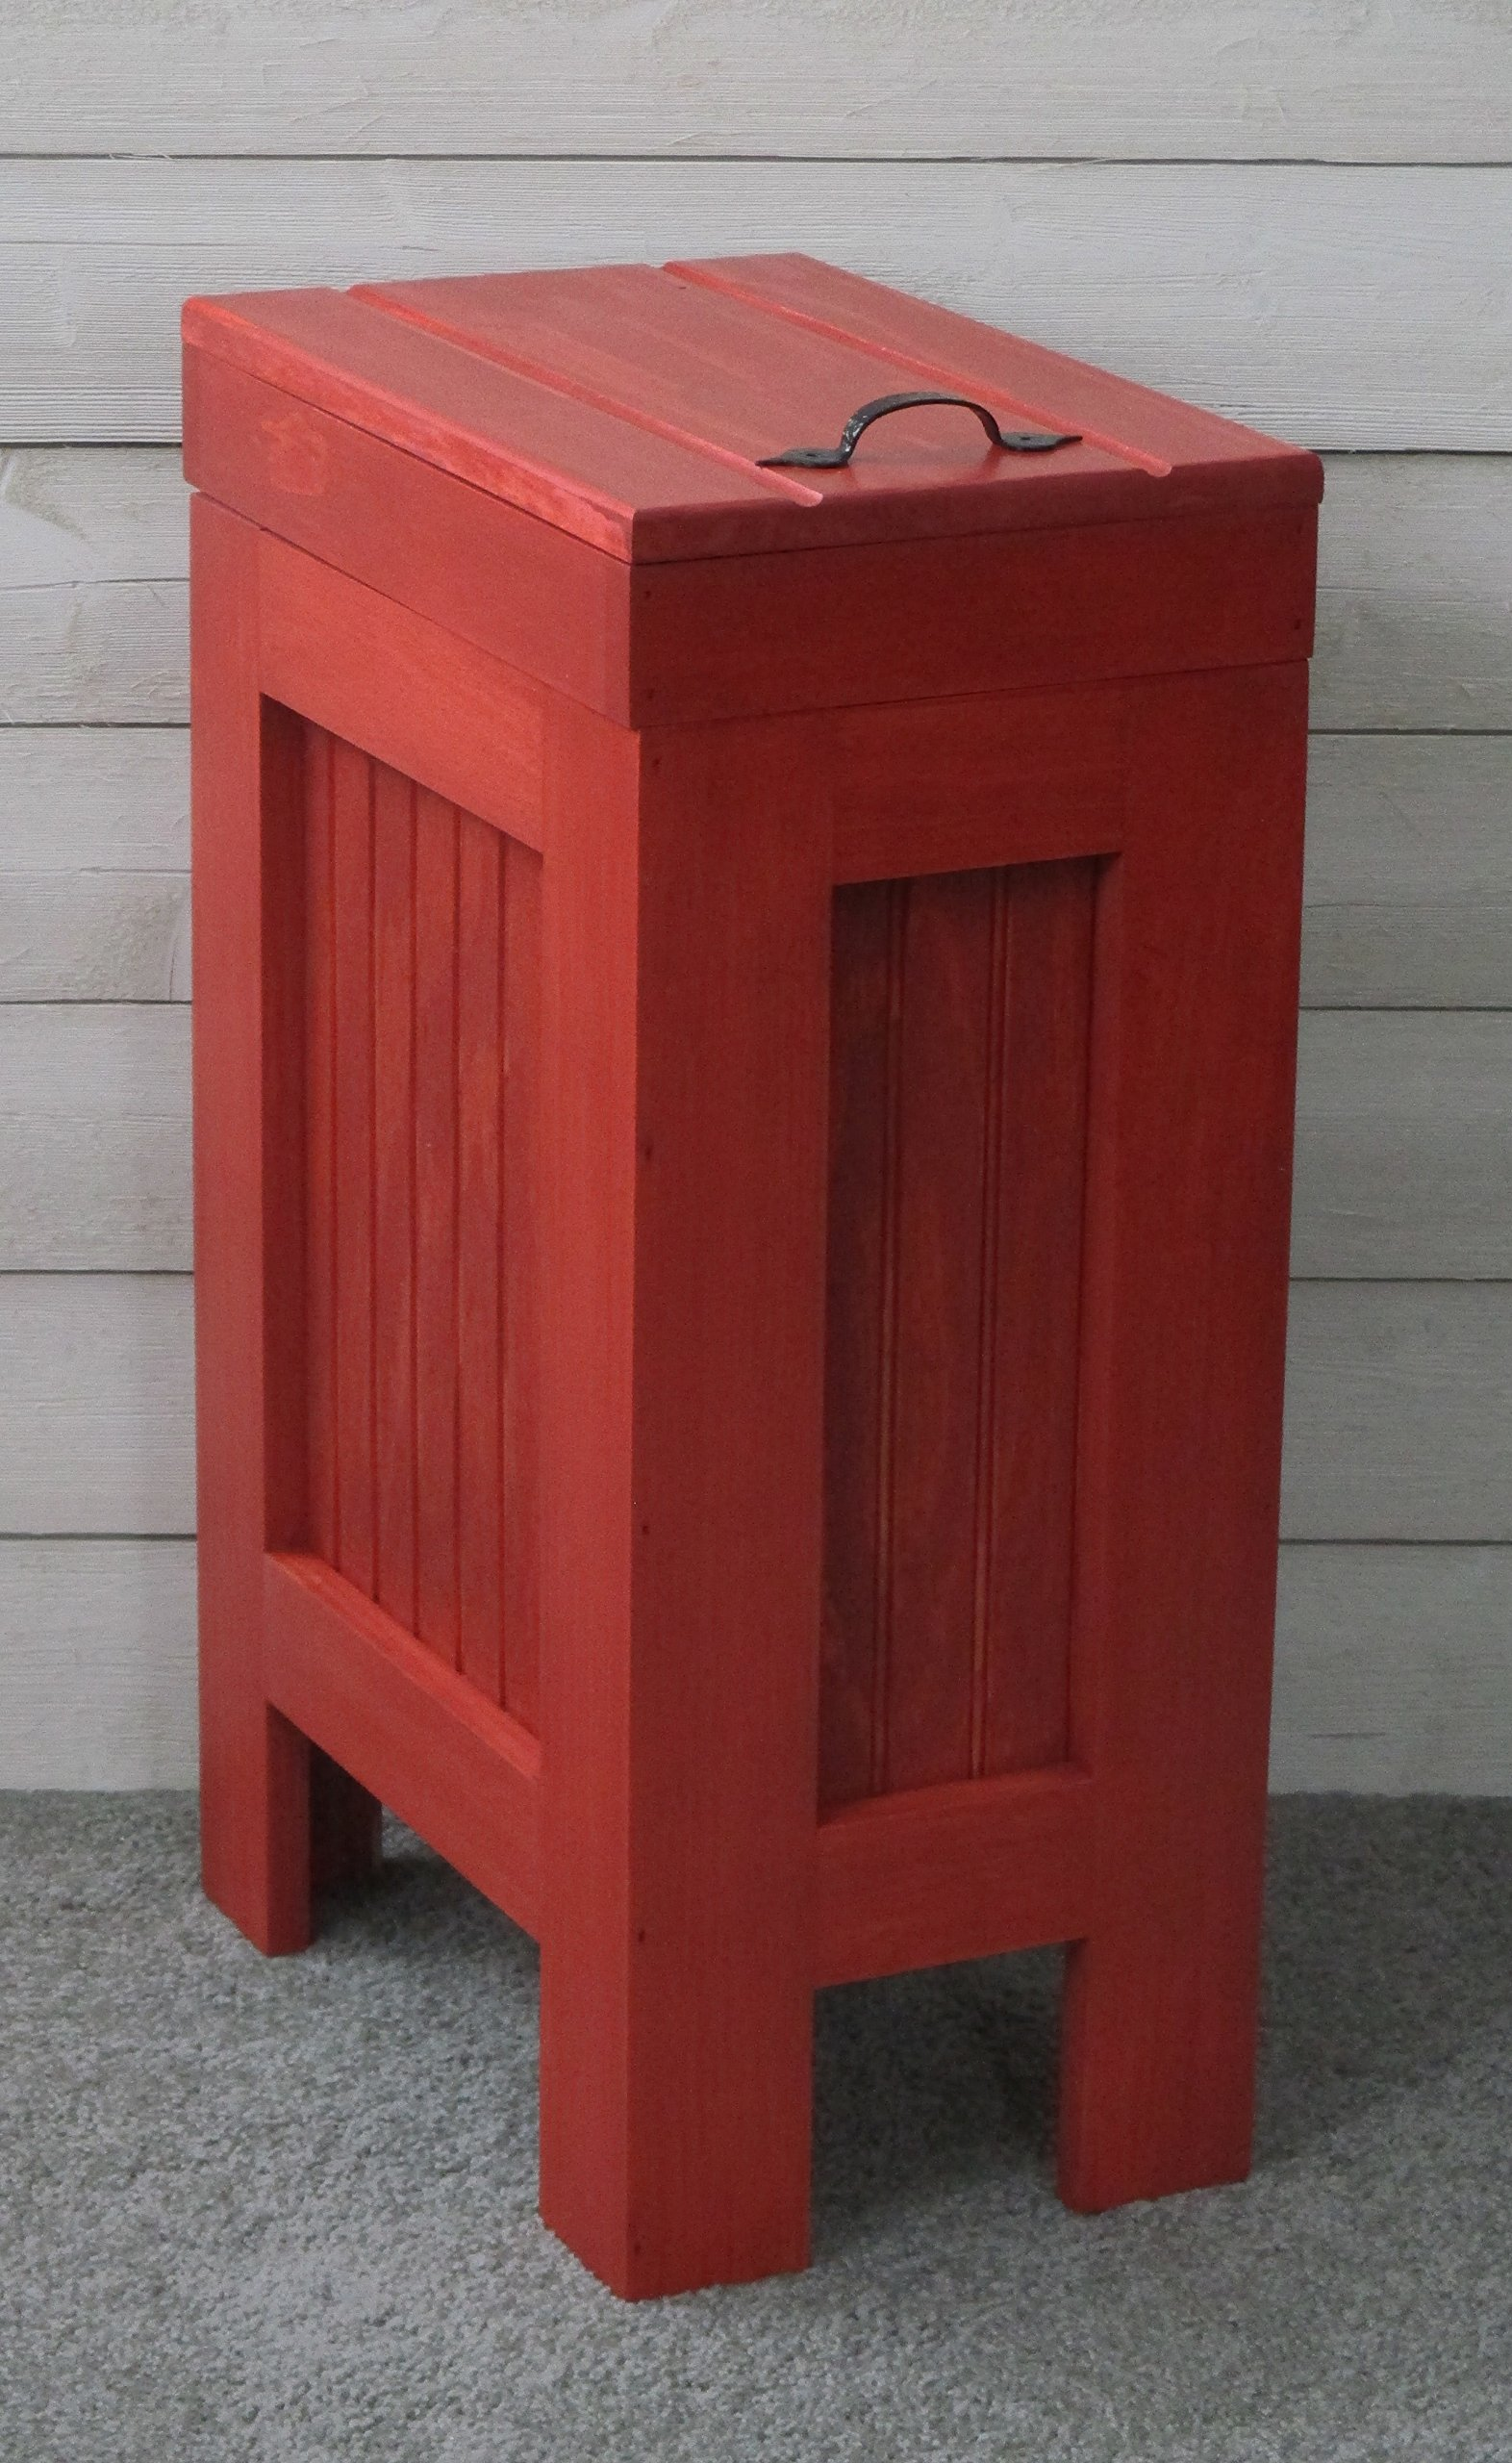 Rustic Wood Trash Bin, Kitchen Trash Can, Wood Trash Can, Dog food storage, 13 Gallon , Recycle Bin, Red Stain with Metal Handle - Handmade in USA By BuffaloWoodshop by BuffaloWood Shop (Image #1)